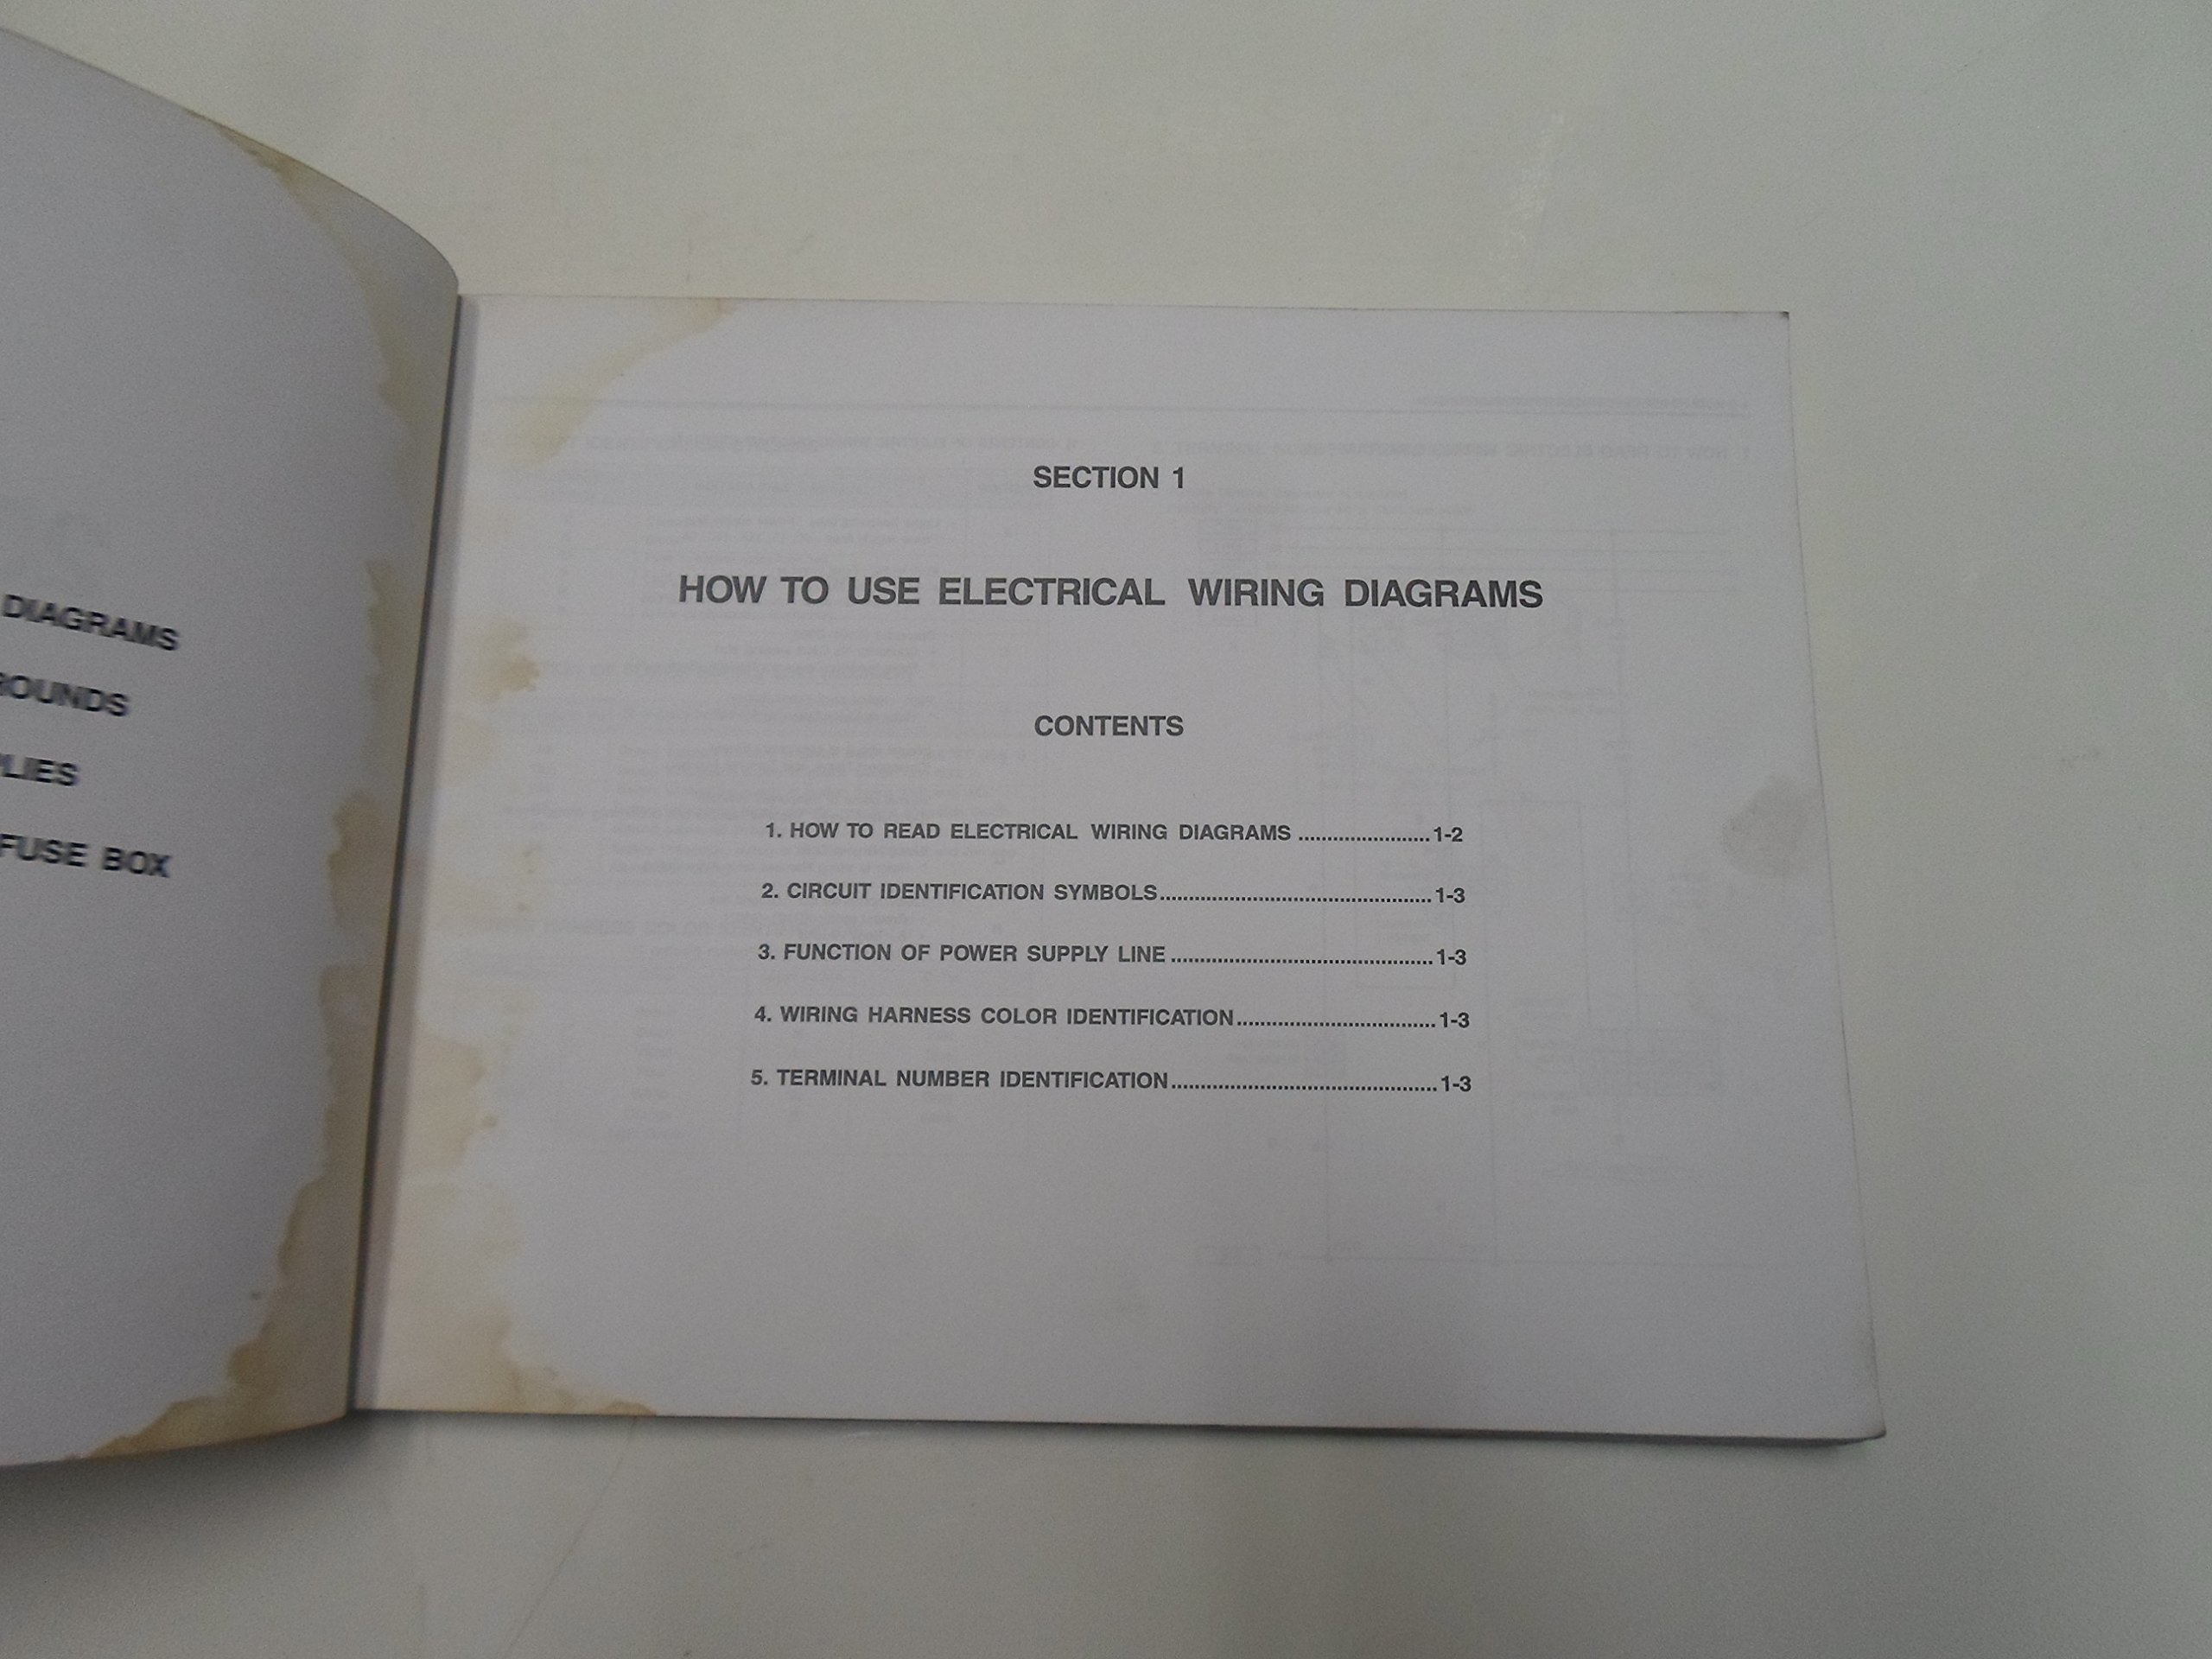 2000 Daewoo Leganza Electrical Wiring Diagram Manual WATER ... on electrical conduit, electrical schematics, electrical diagrams for houses, engine diagrams, hvac diagrams, electrical panels diagrams, kawasaki electrical diagrams, wire diagrams, electrical ladder diagrams, electrical power diagrams, electrical floor plans, electrical building diagrams, air conditioner diagrams, electrical landscaping lights, plumbing diagrams, electrical symbols, electrical blueprints, landscaping diagrams, electrical outlet, electrical math formulas,